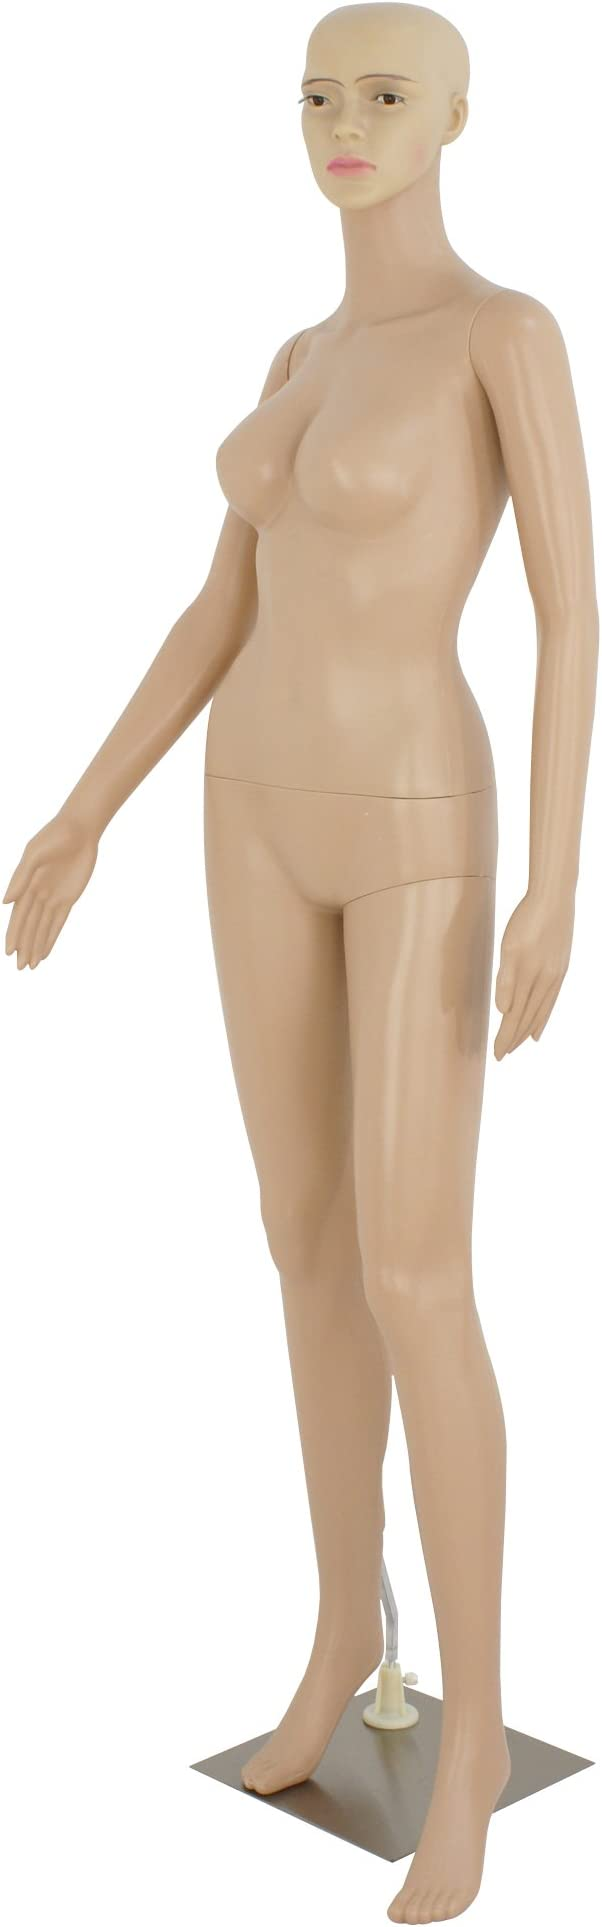 27cm Anime Female Body Mannequin Turns Dress Action Figure Silicone PVC NO BOX